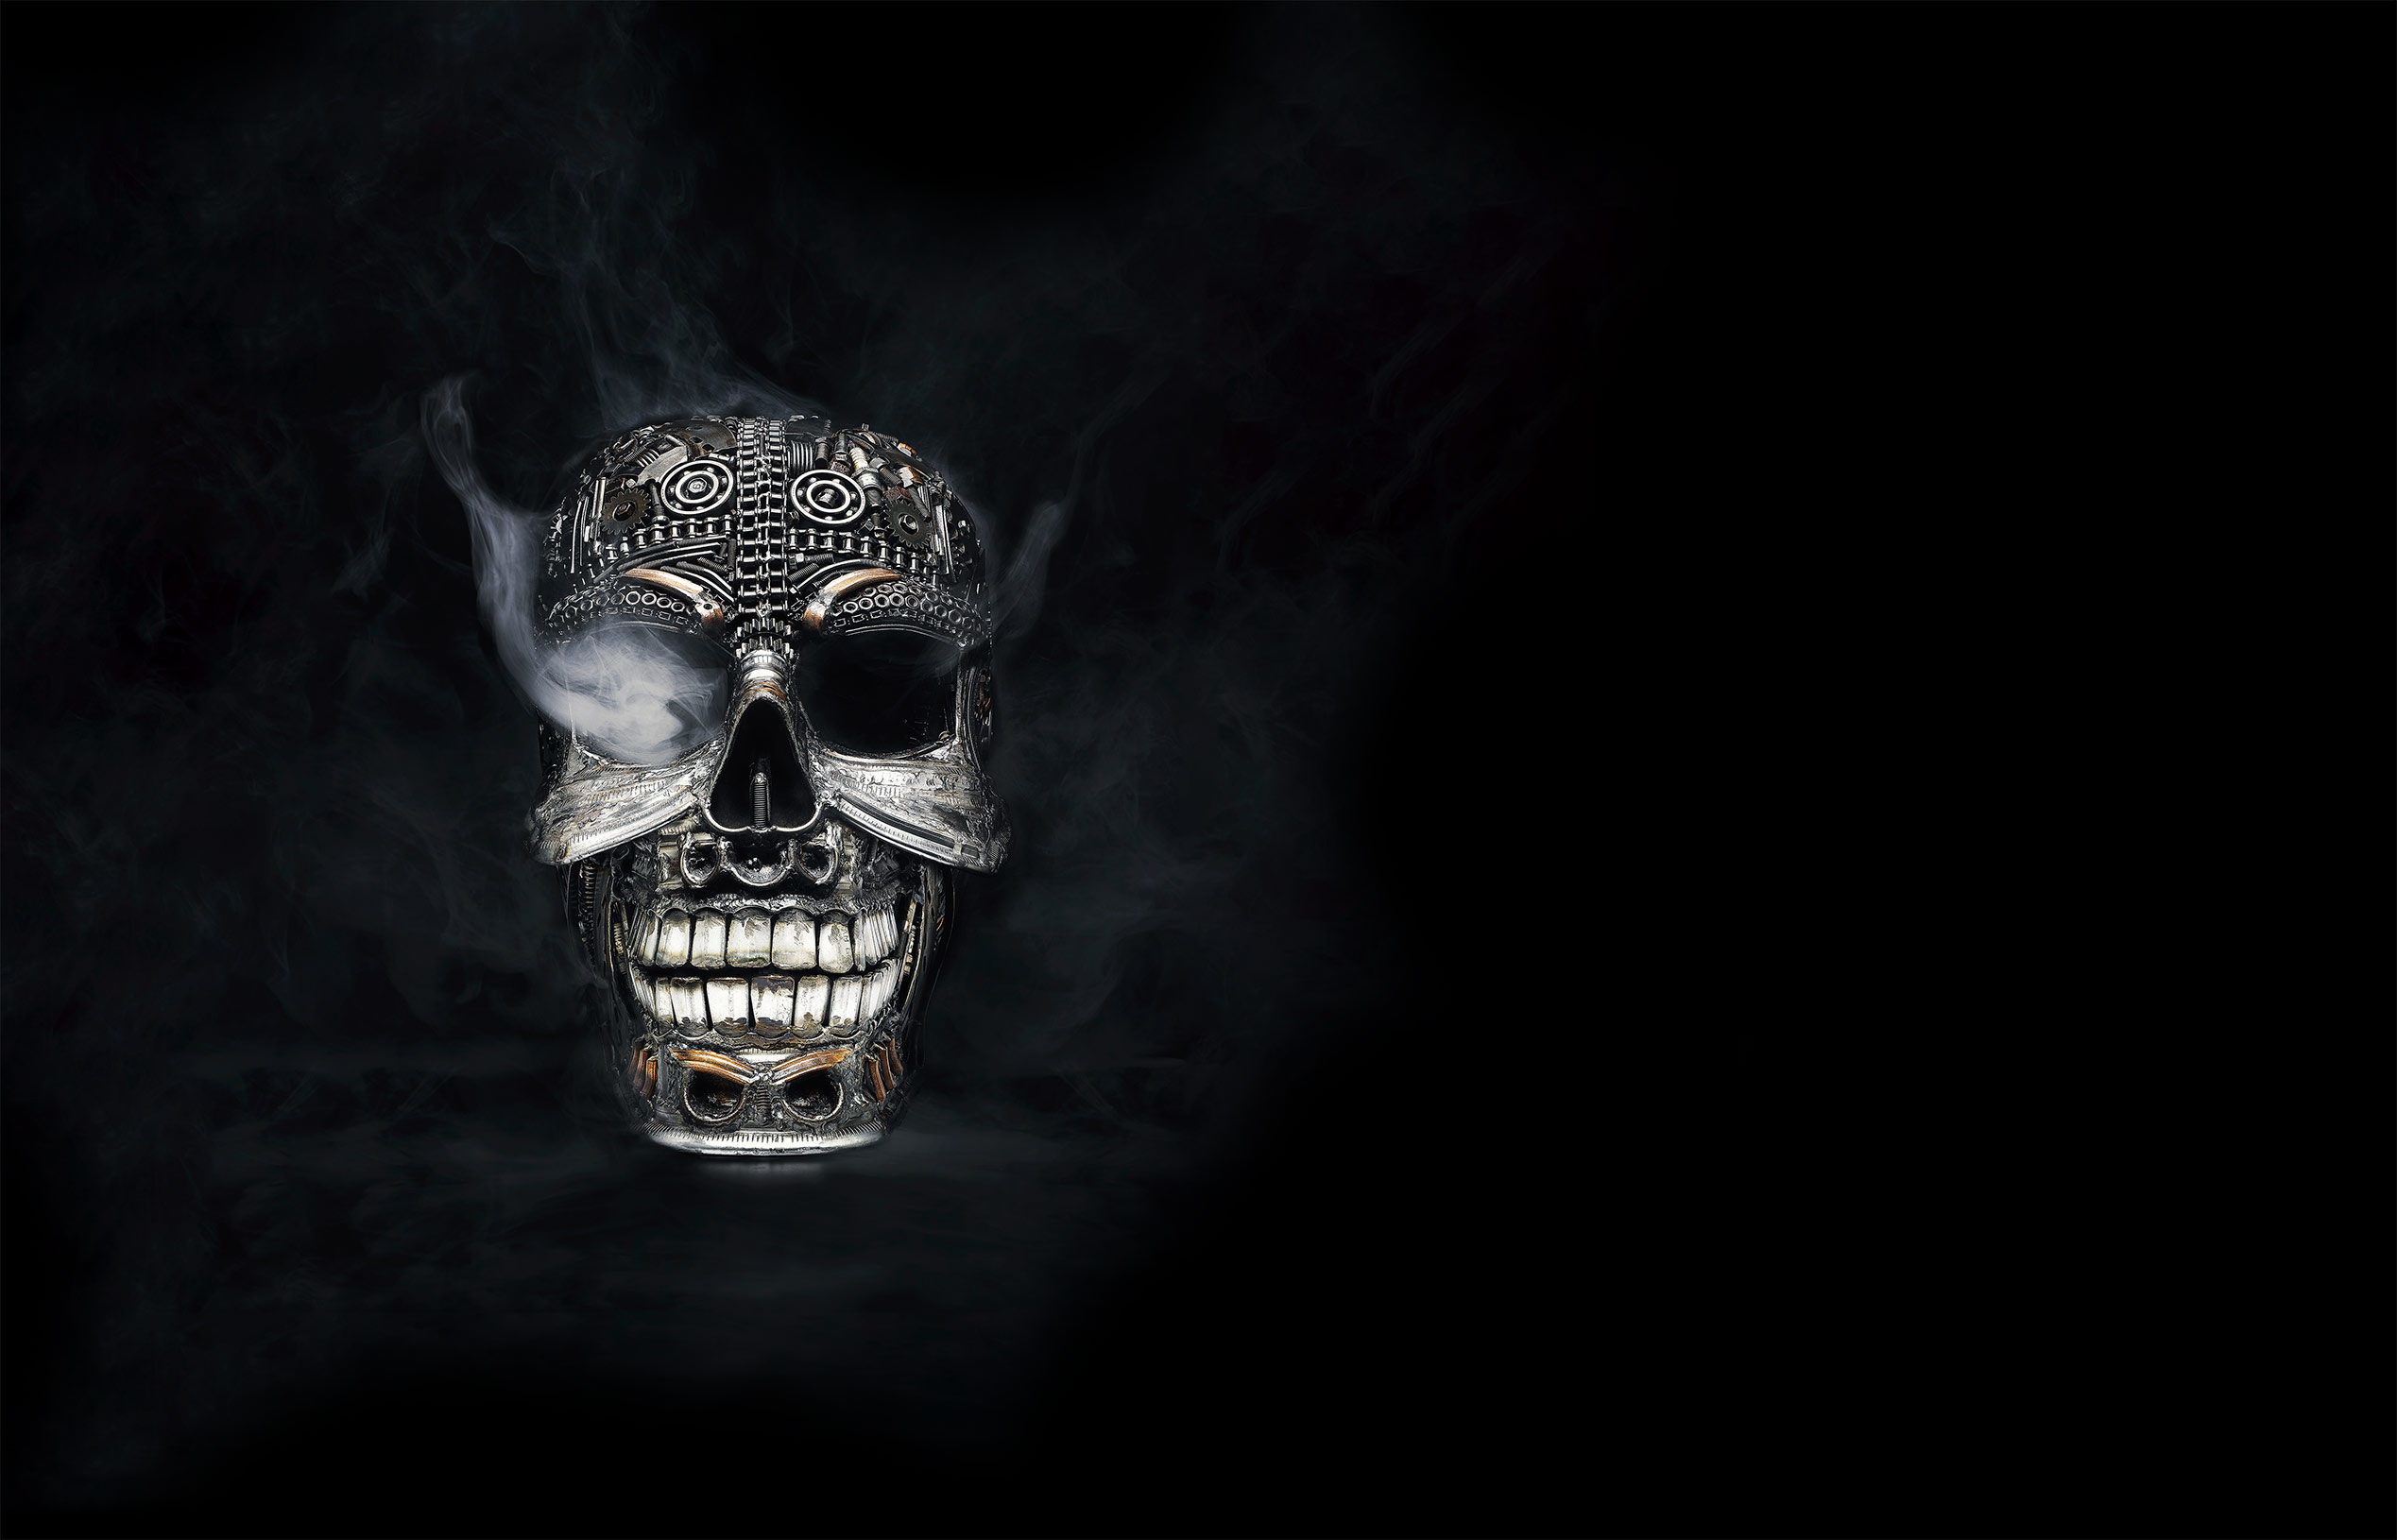 Metal skull before a black background with smoke in one eye product photograph commercial studio artificial light young photographer Philipp Burkart Hamburg